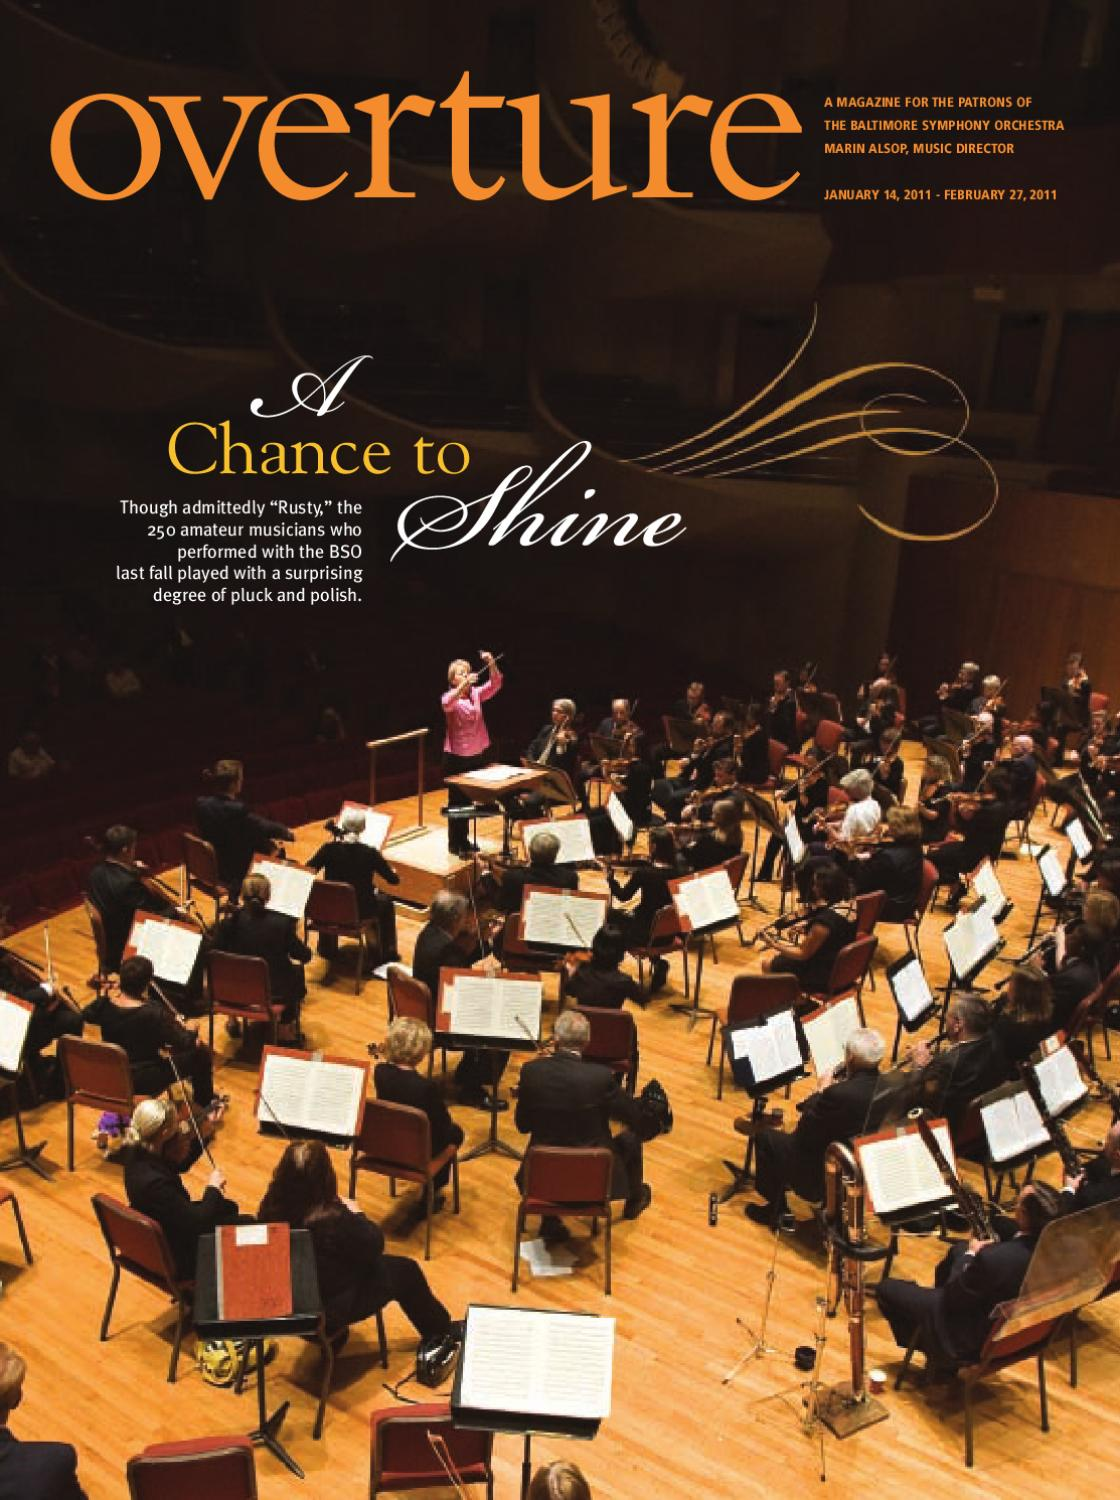 Overture January February 2011 By Baltimore Symphony Orchestra Issuu Andrew Smith Bermuda Shorts Kuning 31